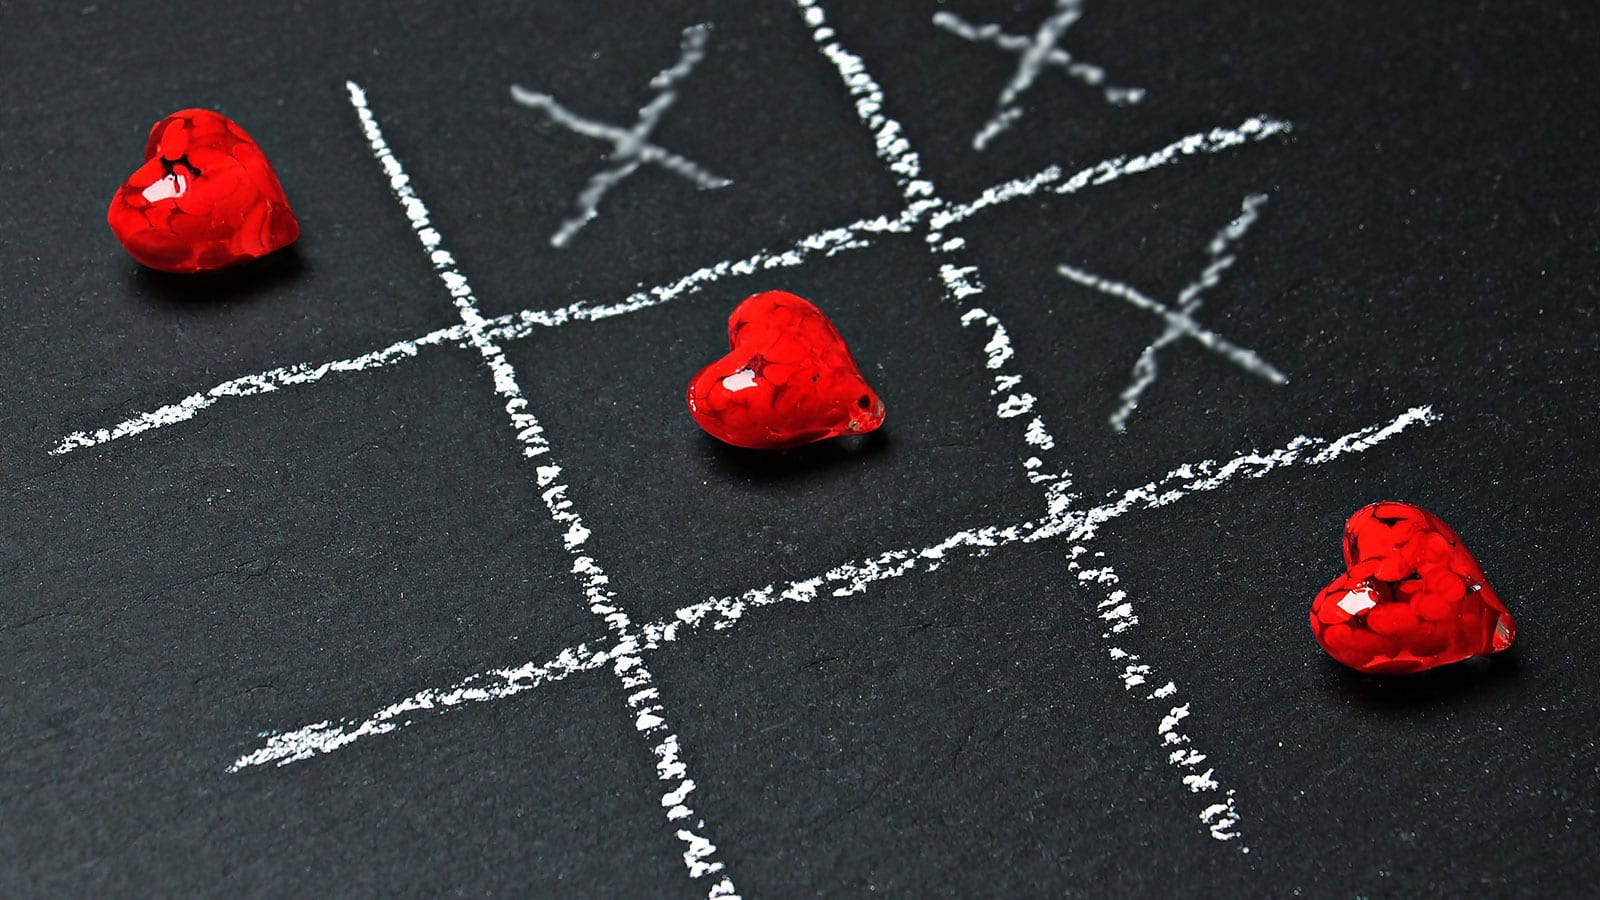 The Heartbleed Vulnerability Aftermath